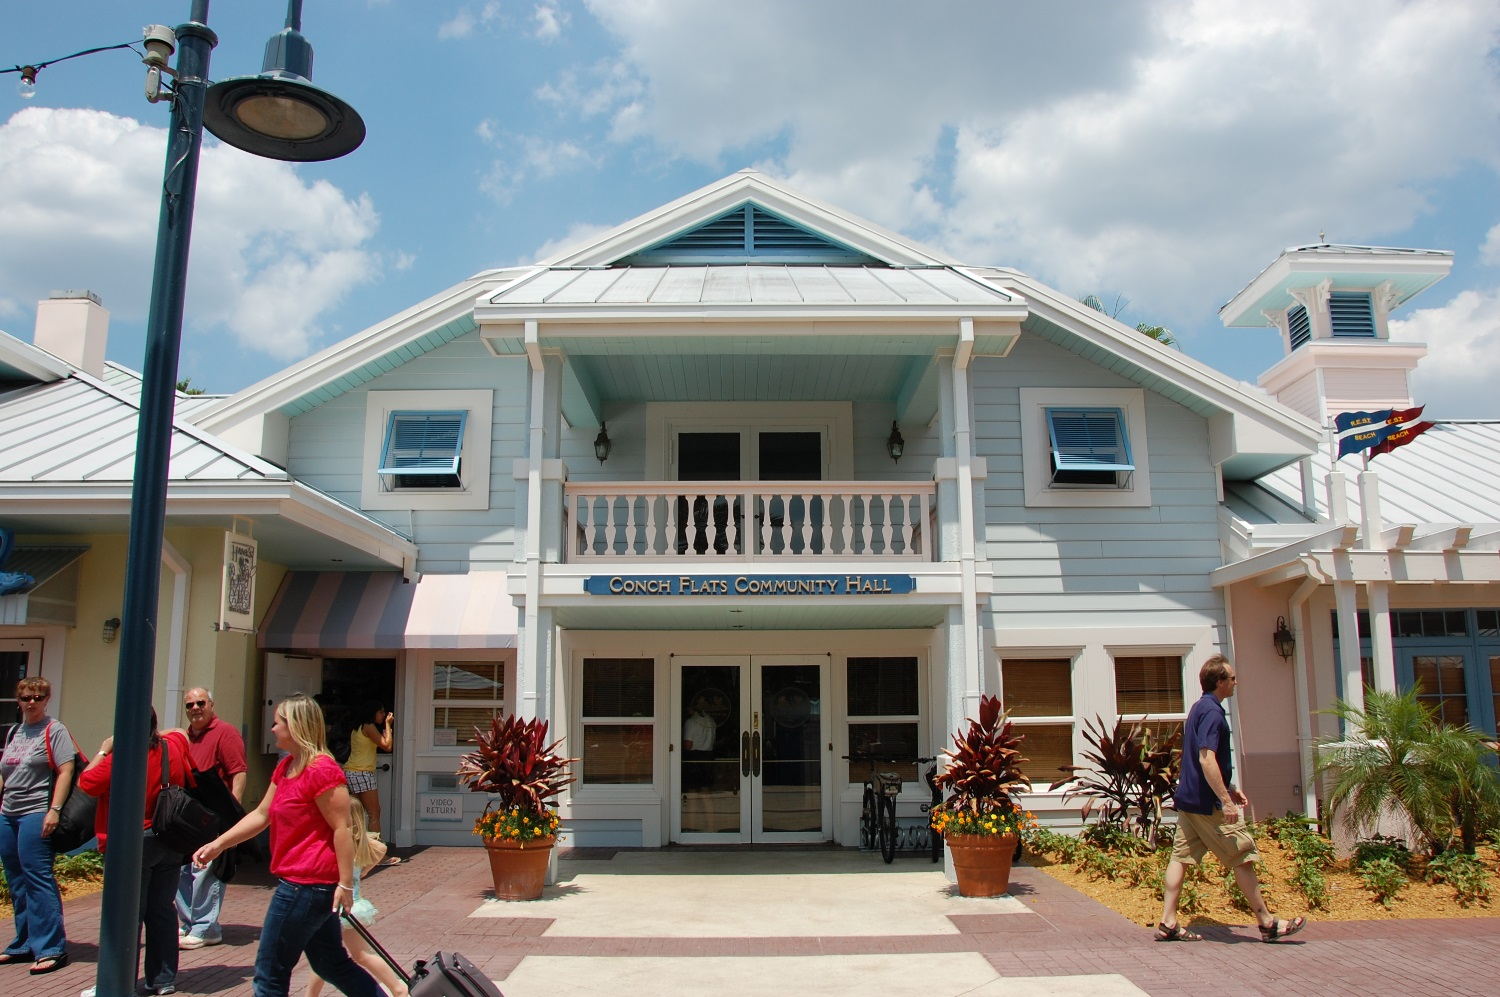 Conche Flats Community Hall at Disney's Old Key West Resort